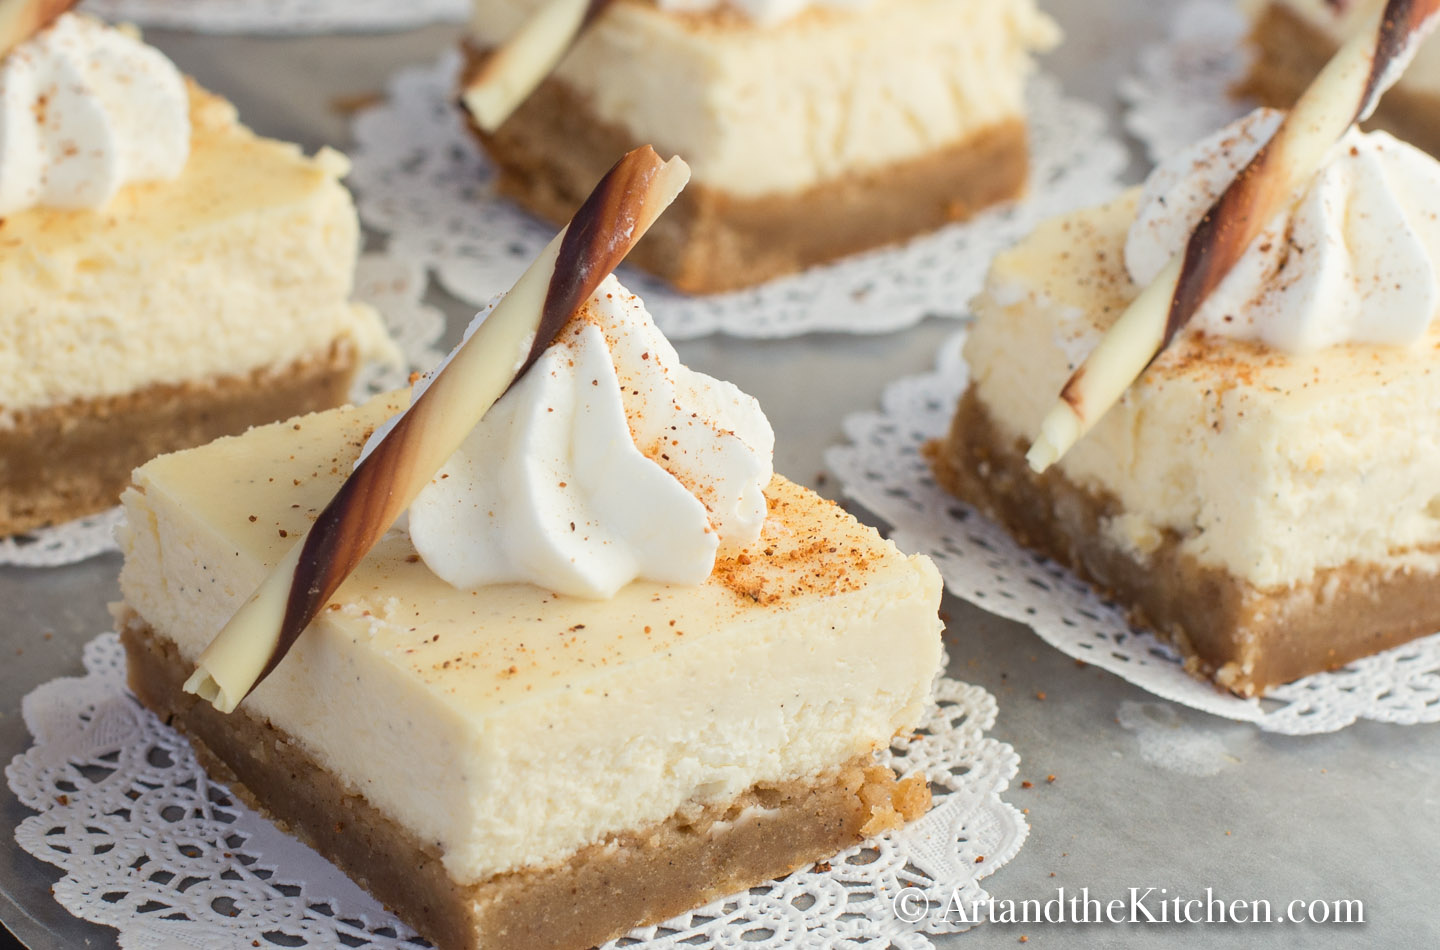 Serving tray filled with cheesecake squares on paper dollies. Garnished with dollop of whipped cream and chocolate rod.